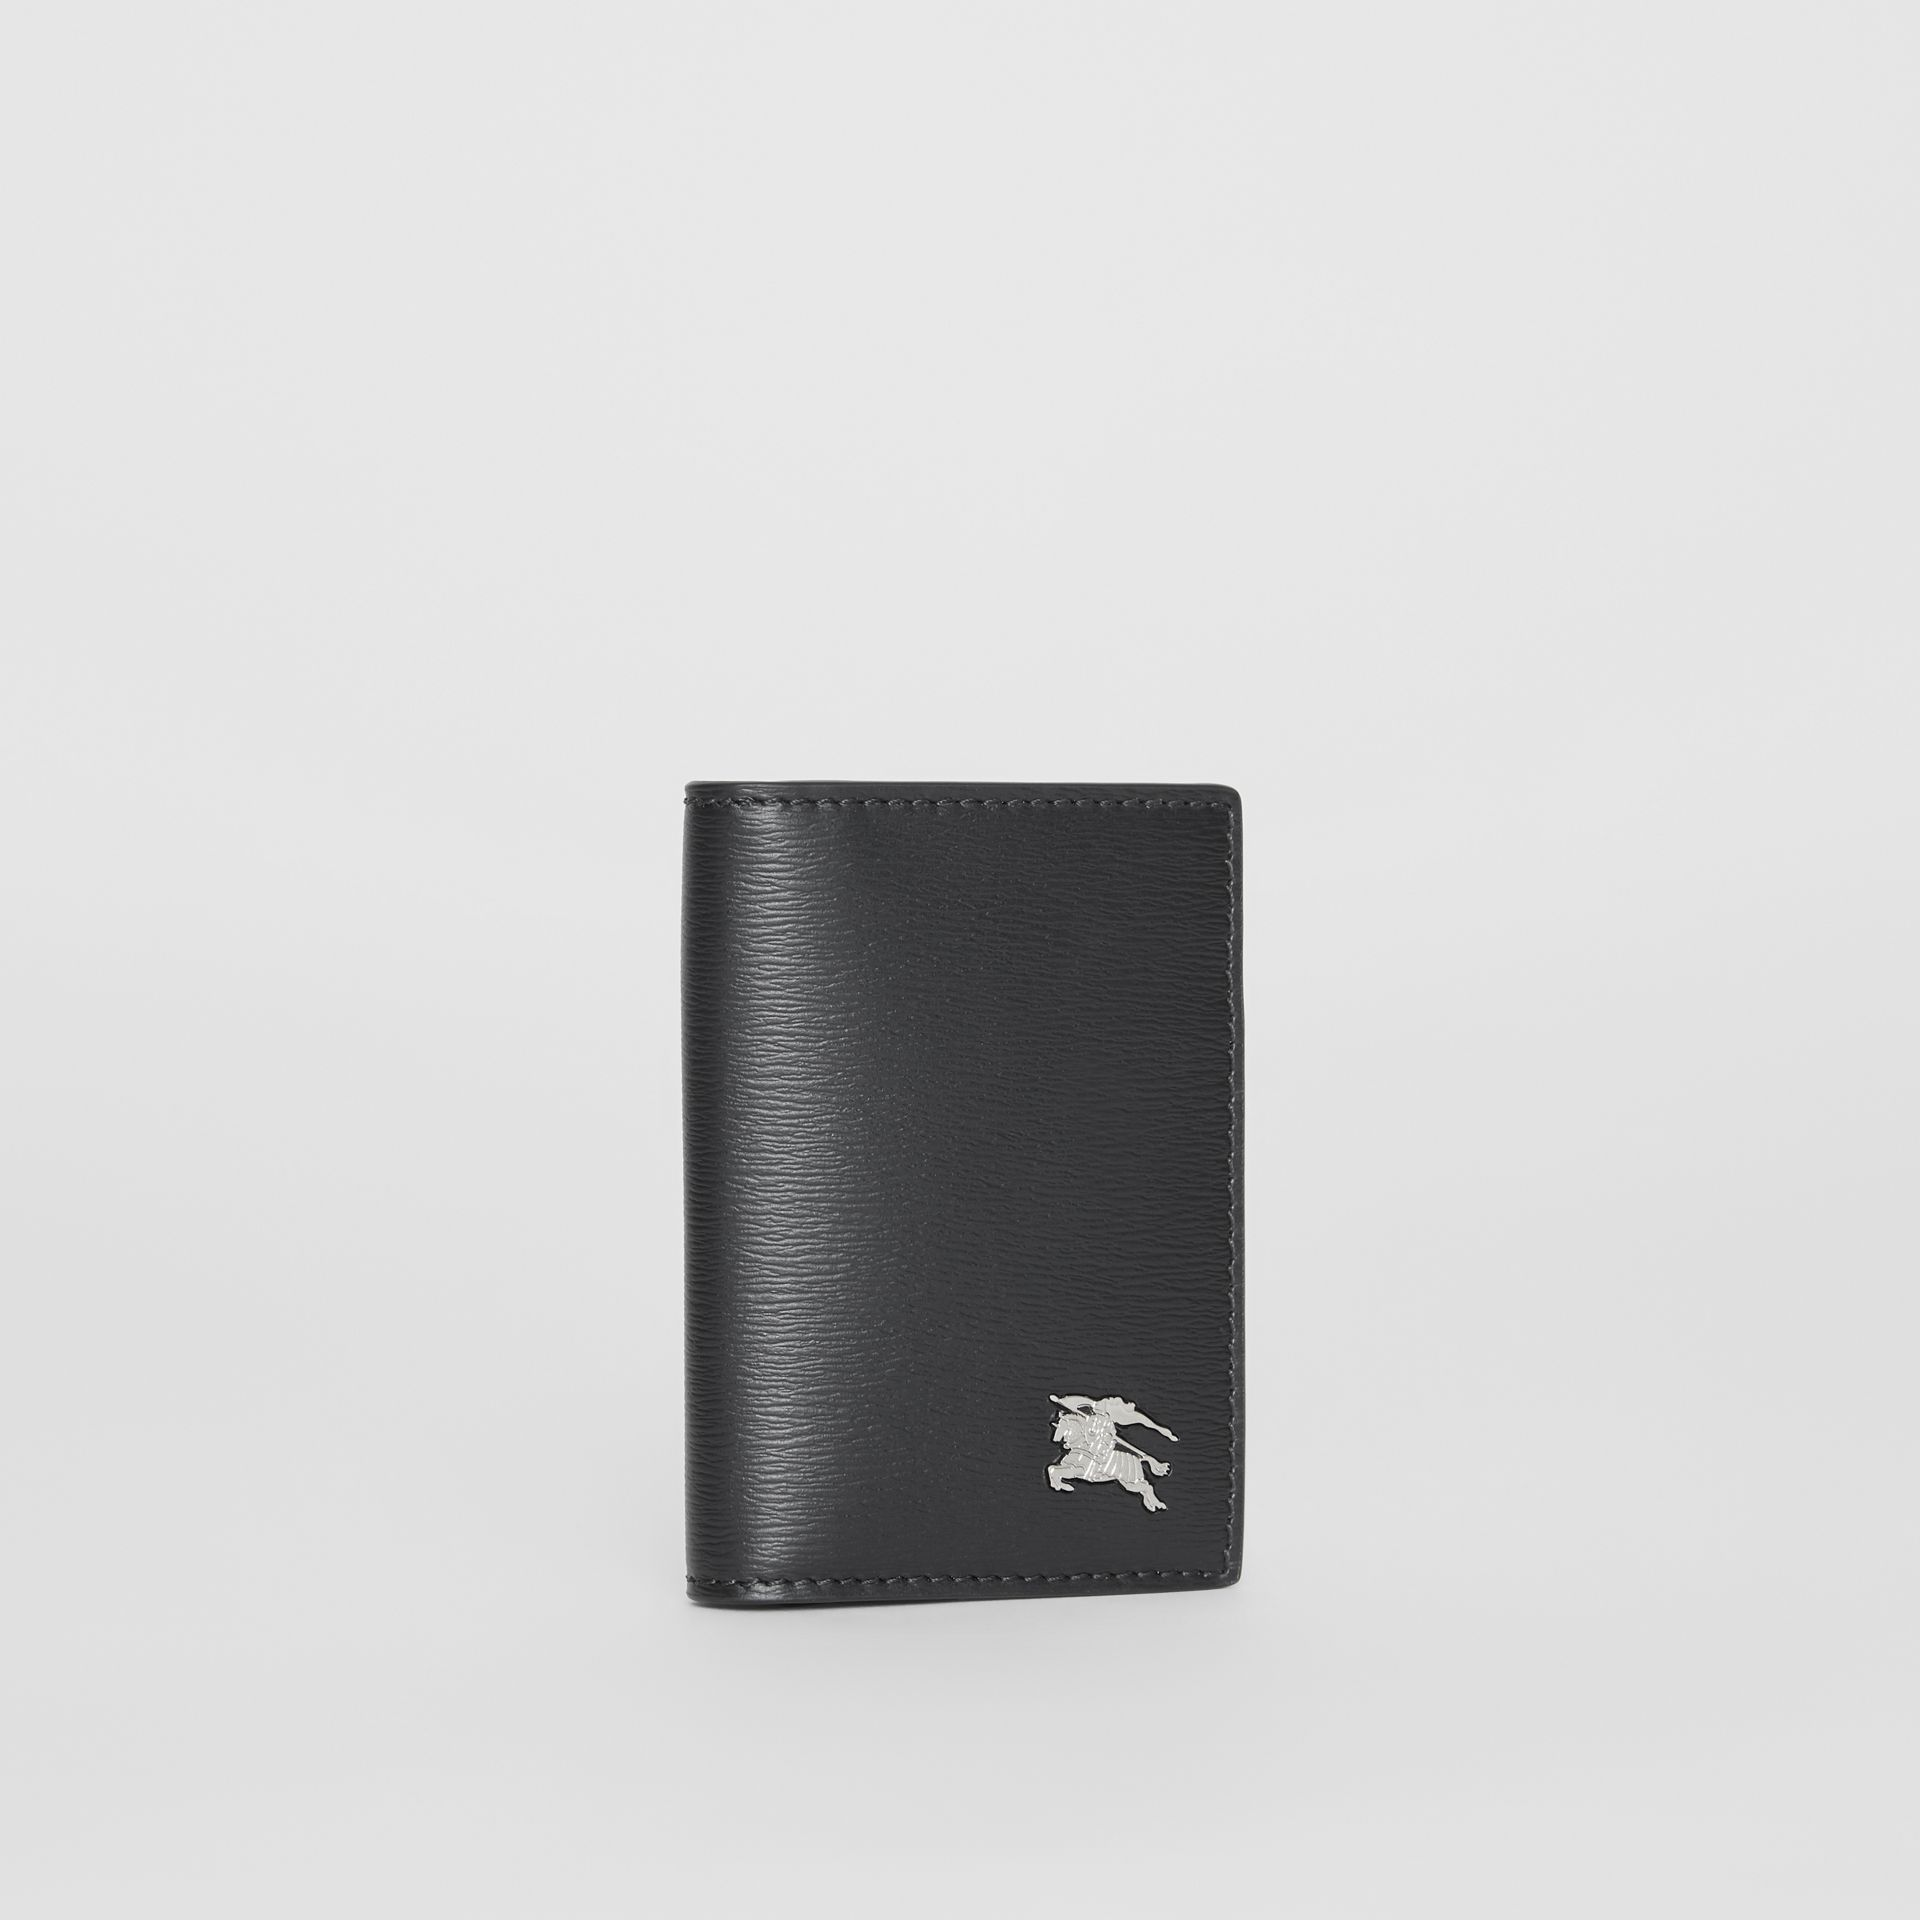 Grainy Leather Folding Card Case in Black - Men | Burberry Canada - gallery image 3